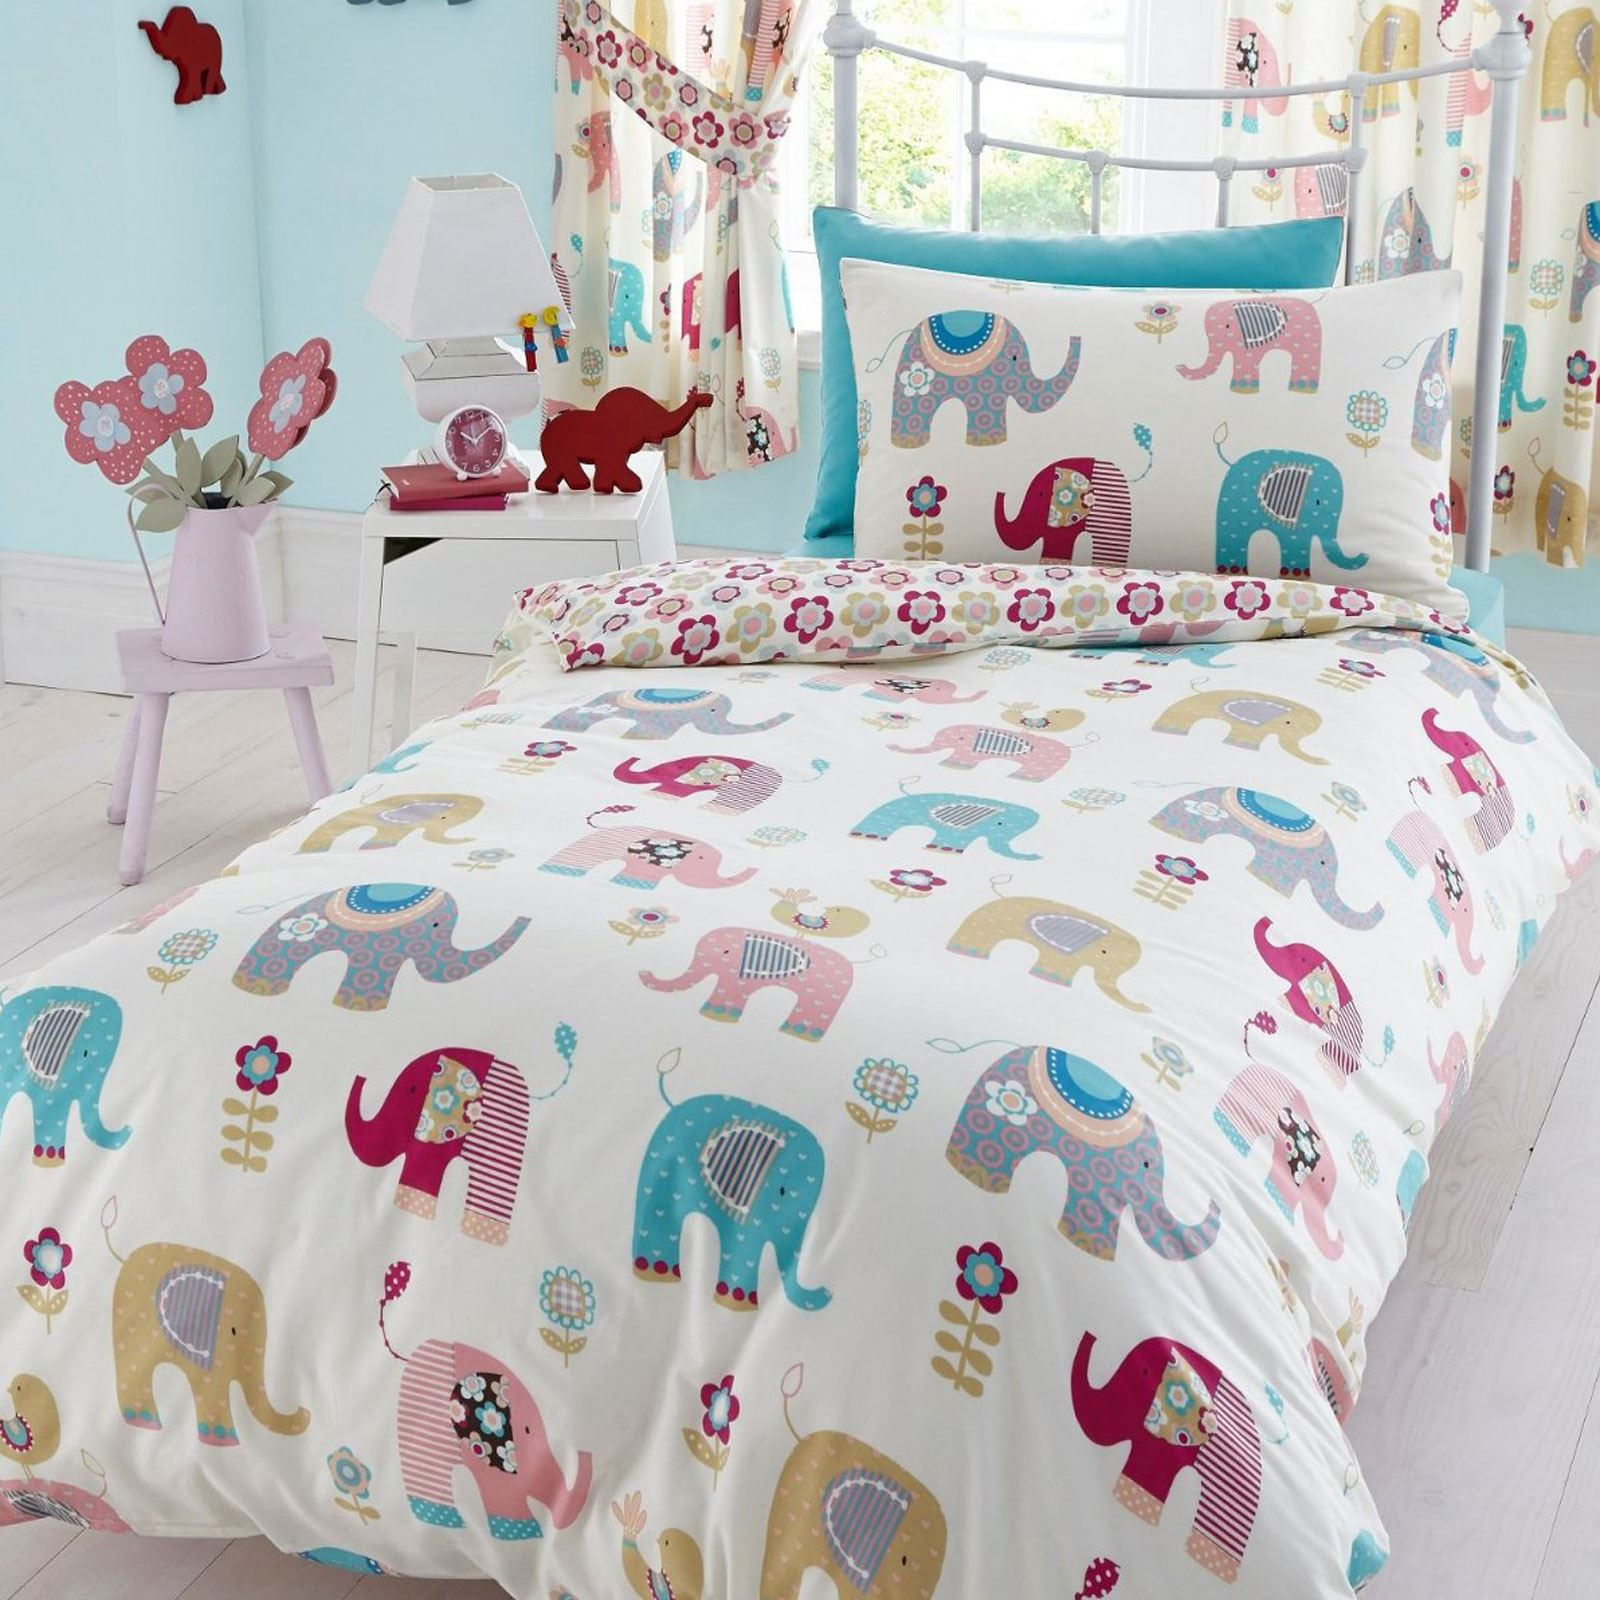 SINGLE DUVET COVER SETS 100 COTTON BEDDING HORSE